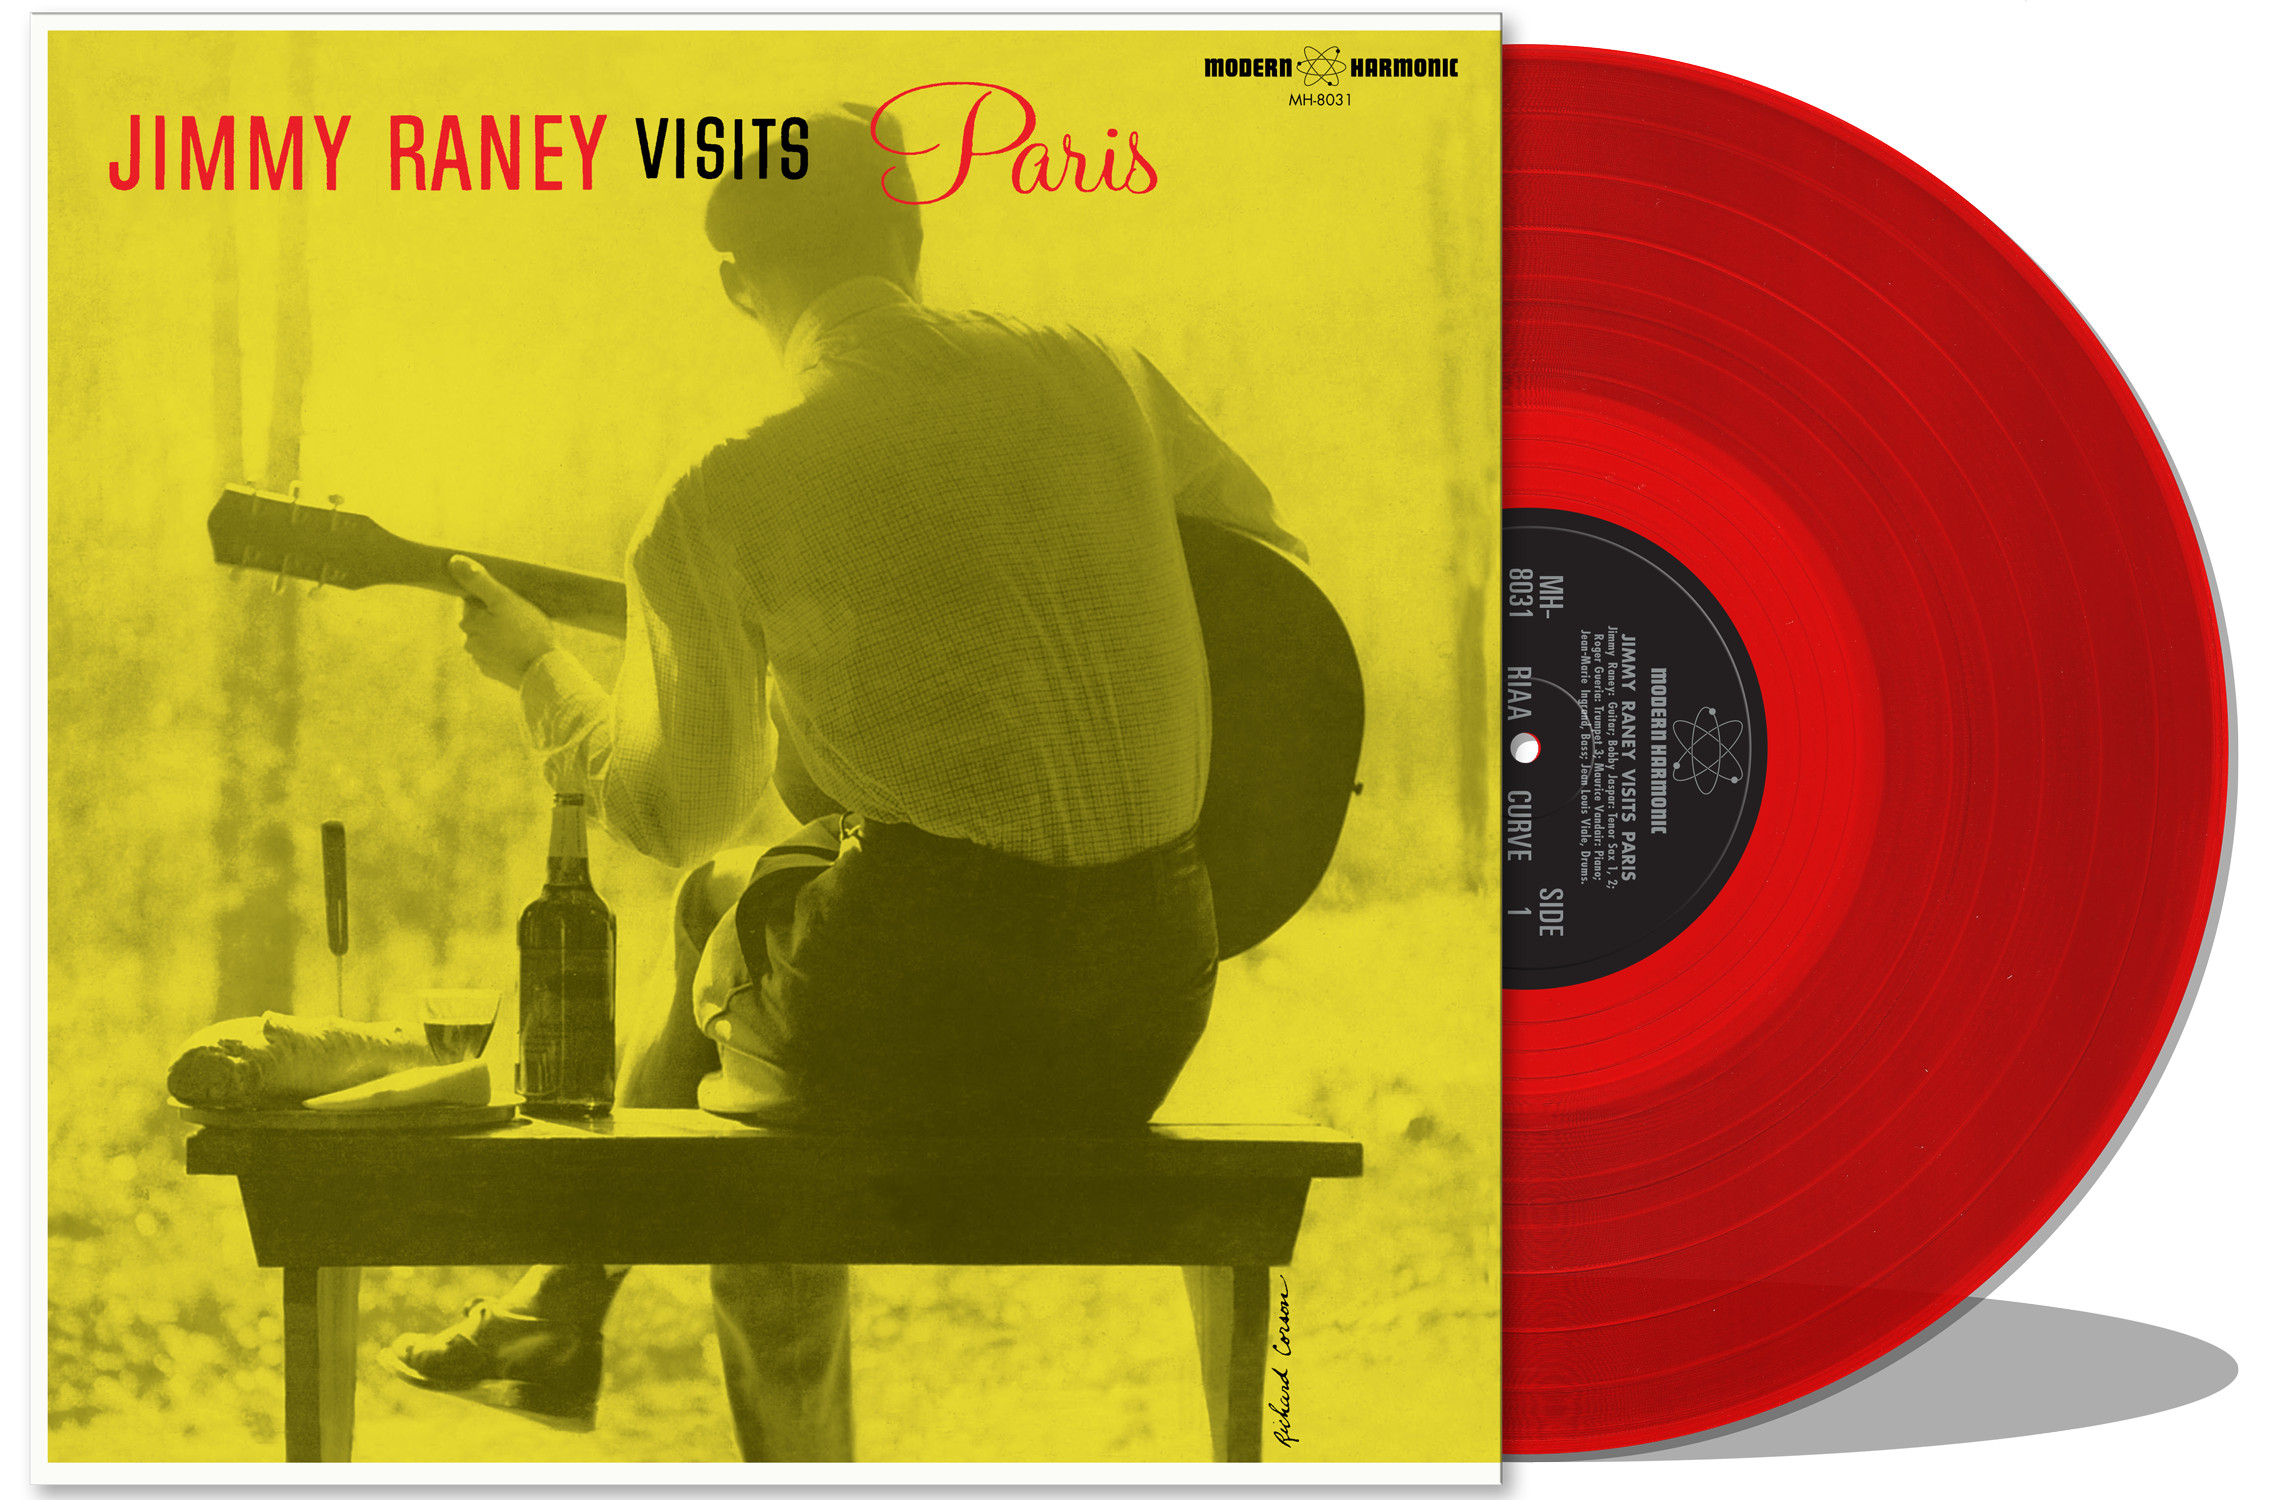 Raney, Jimmy - Visits Paris - LP